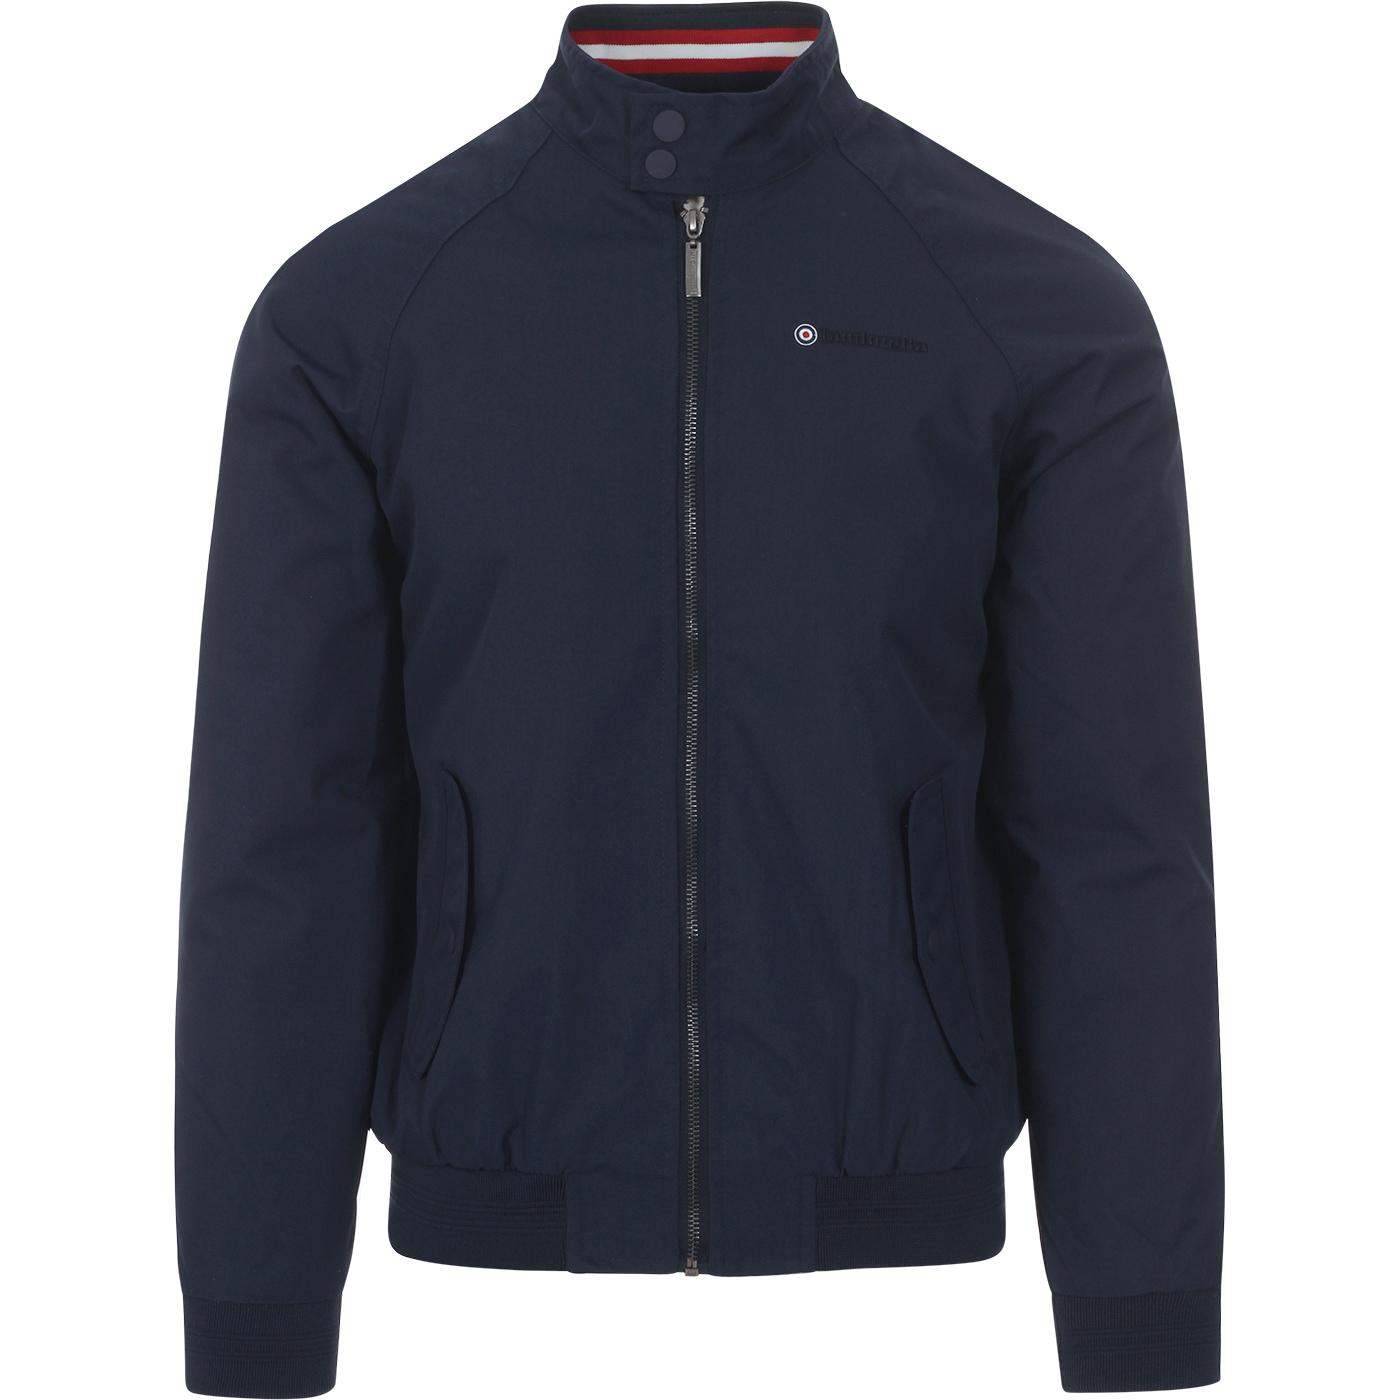 LAMBRETTA Mod Snap Collar Harrington Jacket (Navy)